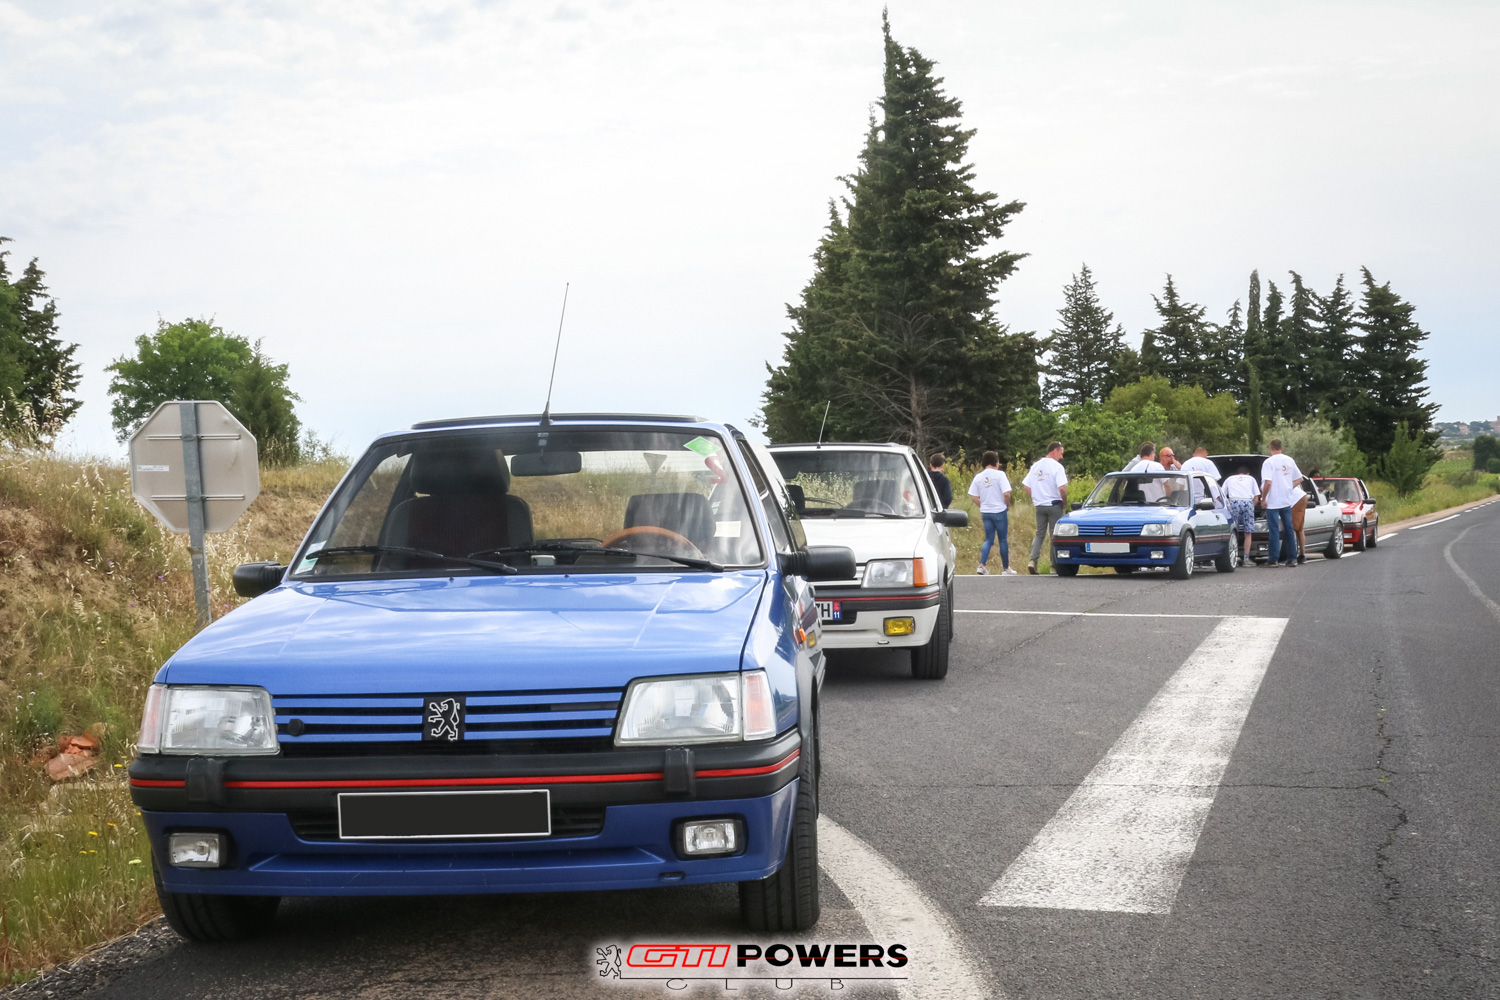 [GTIPOWERS DAYS] Nationale #4 - 8-9-10 Juin 2019 - Beziers - Page 8 Gtipow74